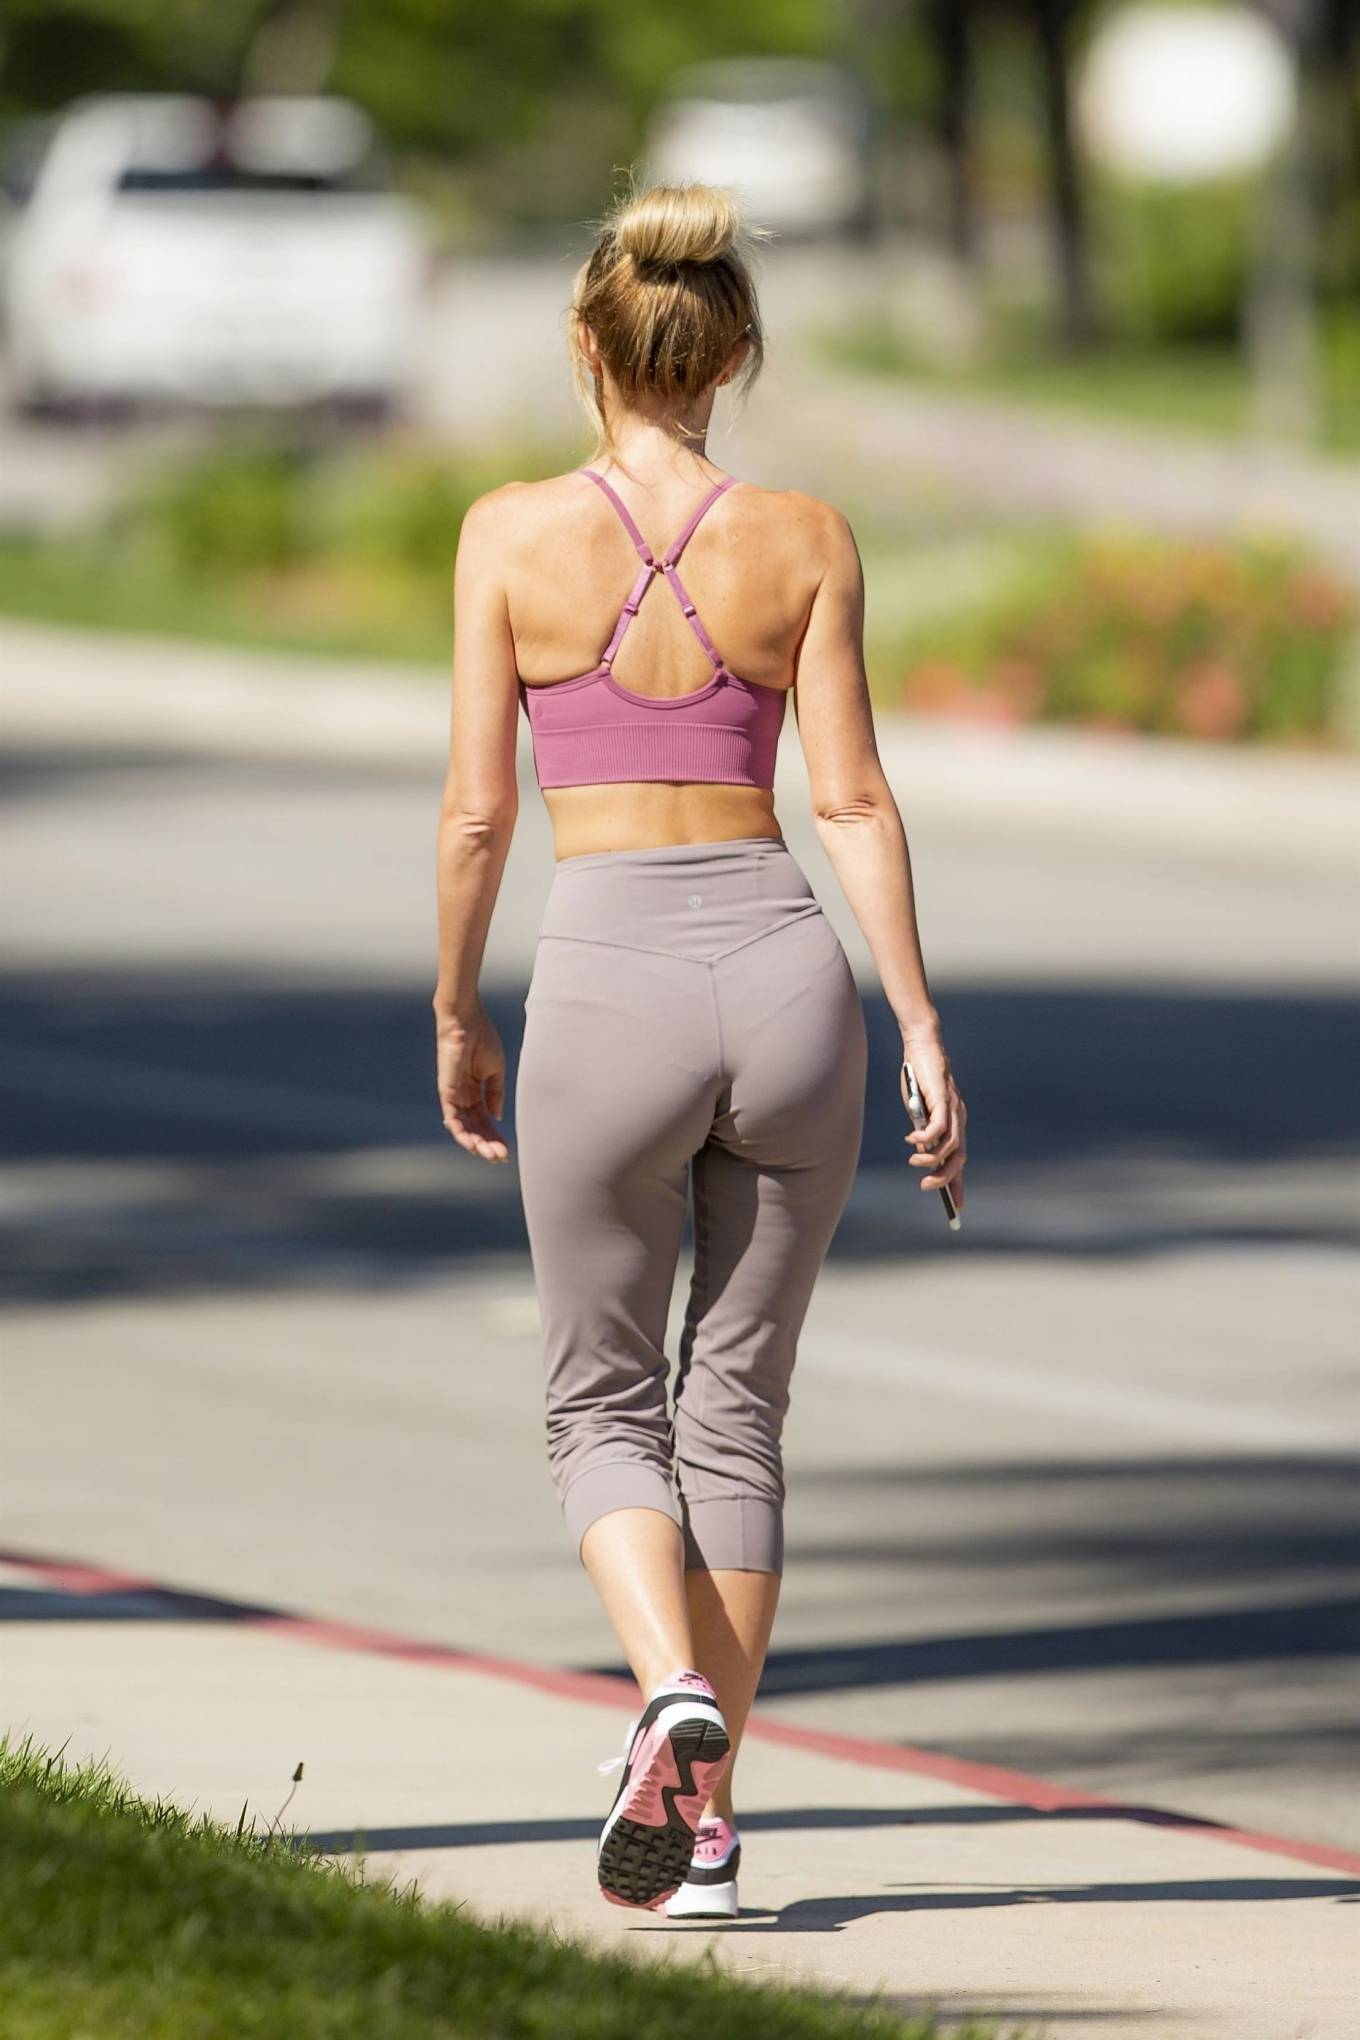 Hayley Roberts Hasselhoff 2020 : Hayley Roberts Hasselhoff in Tights and Sports Bra – Out in Calabasas-12